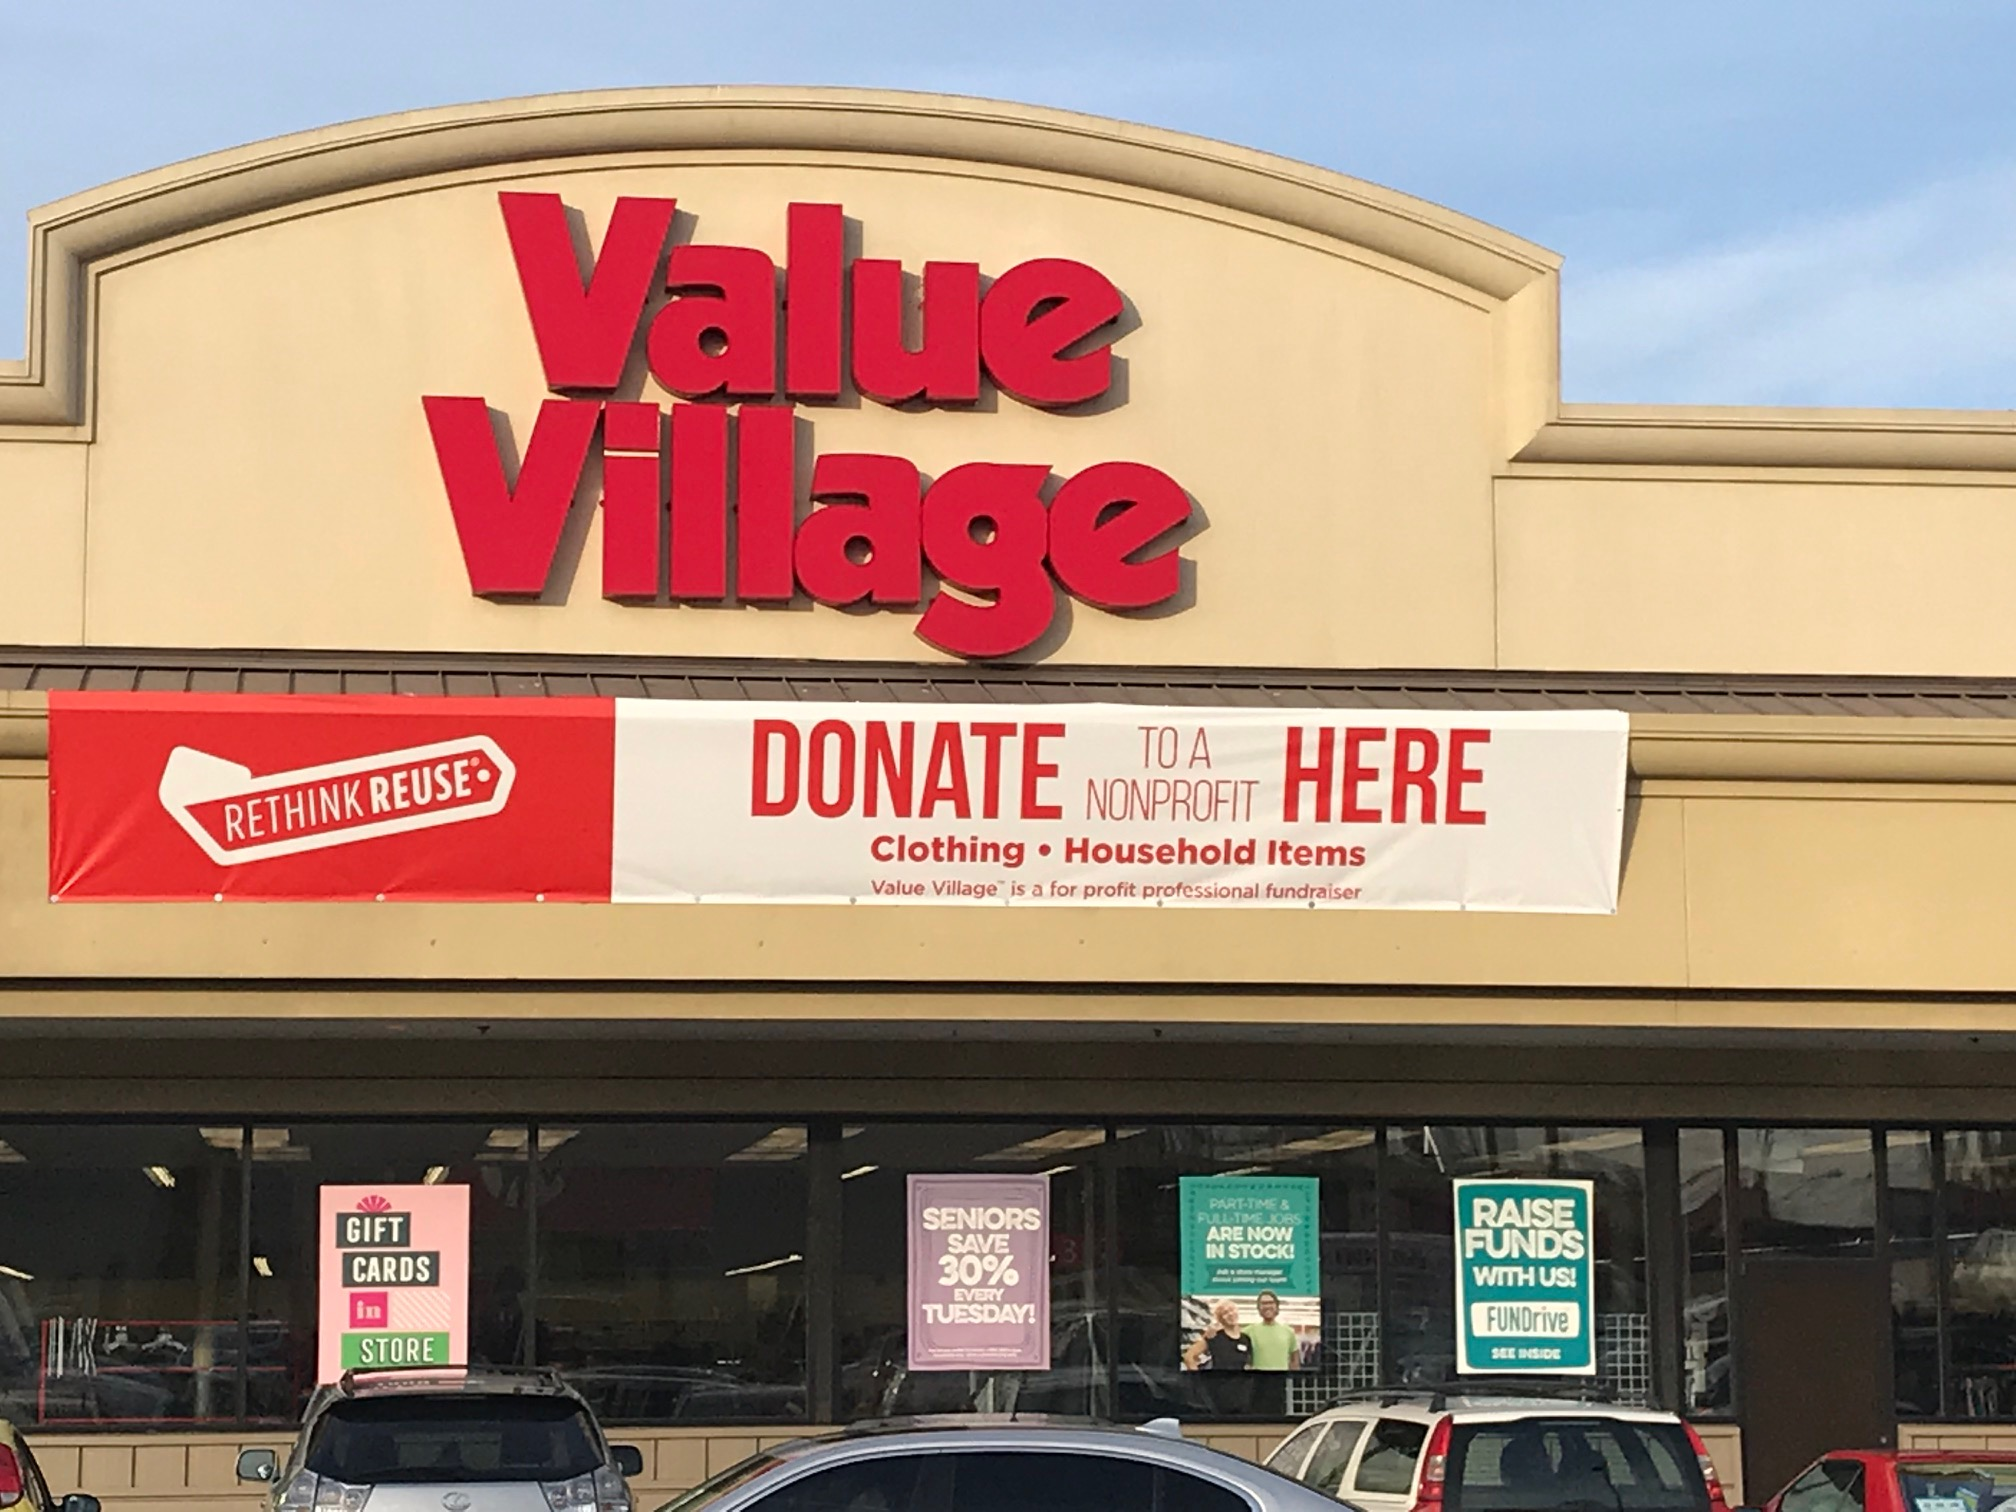 Value Village rebuked by judge for deceiving consumers